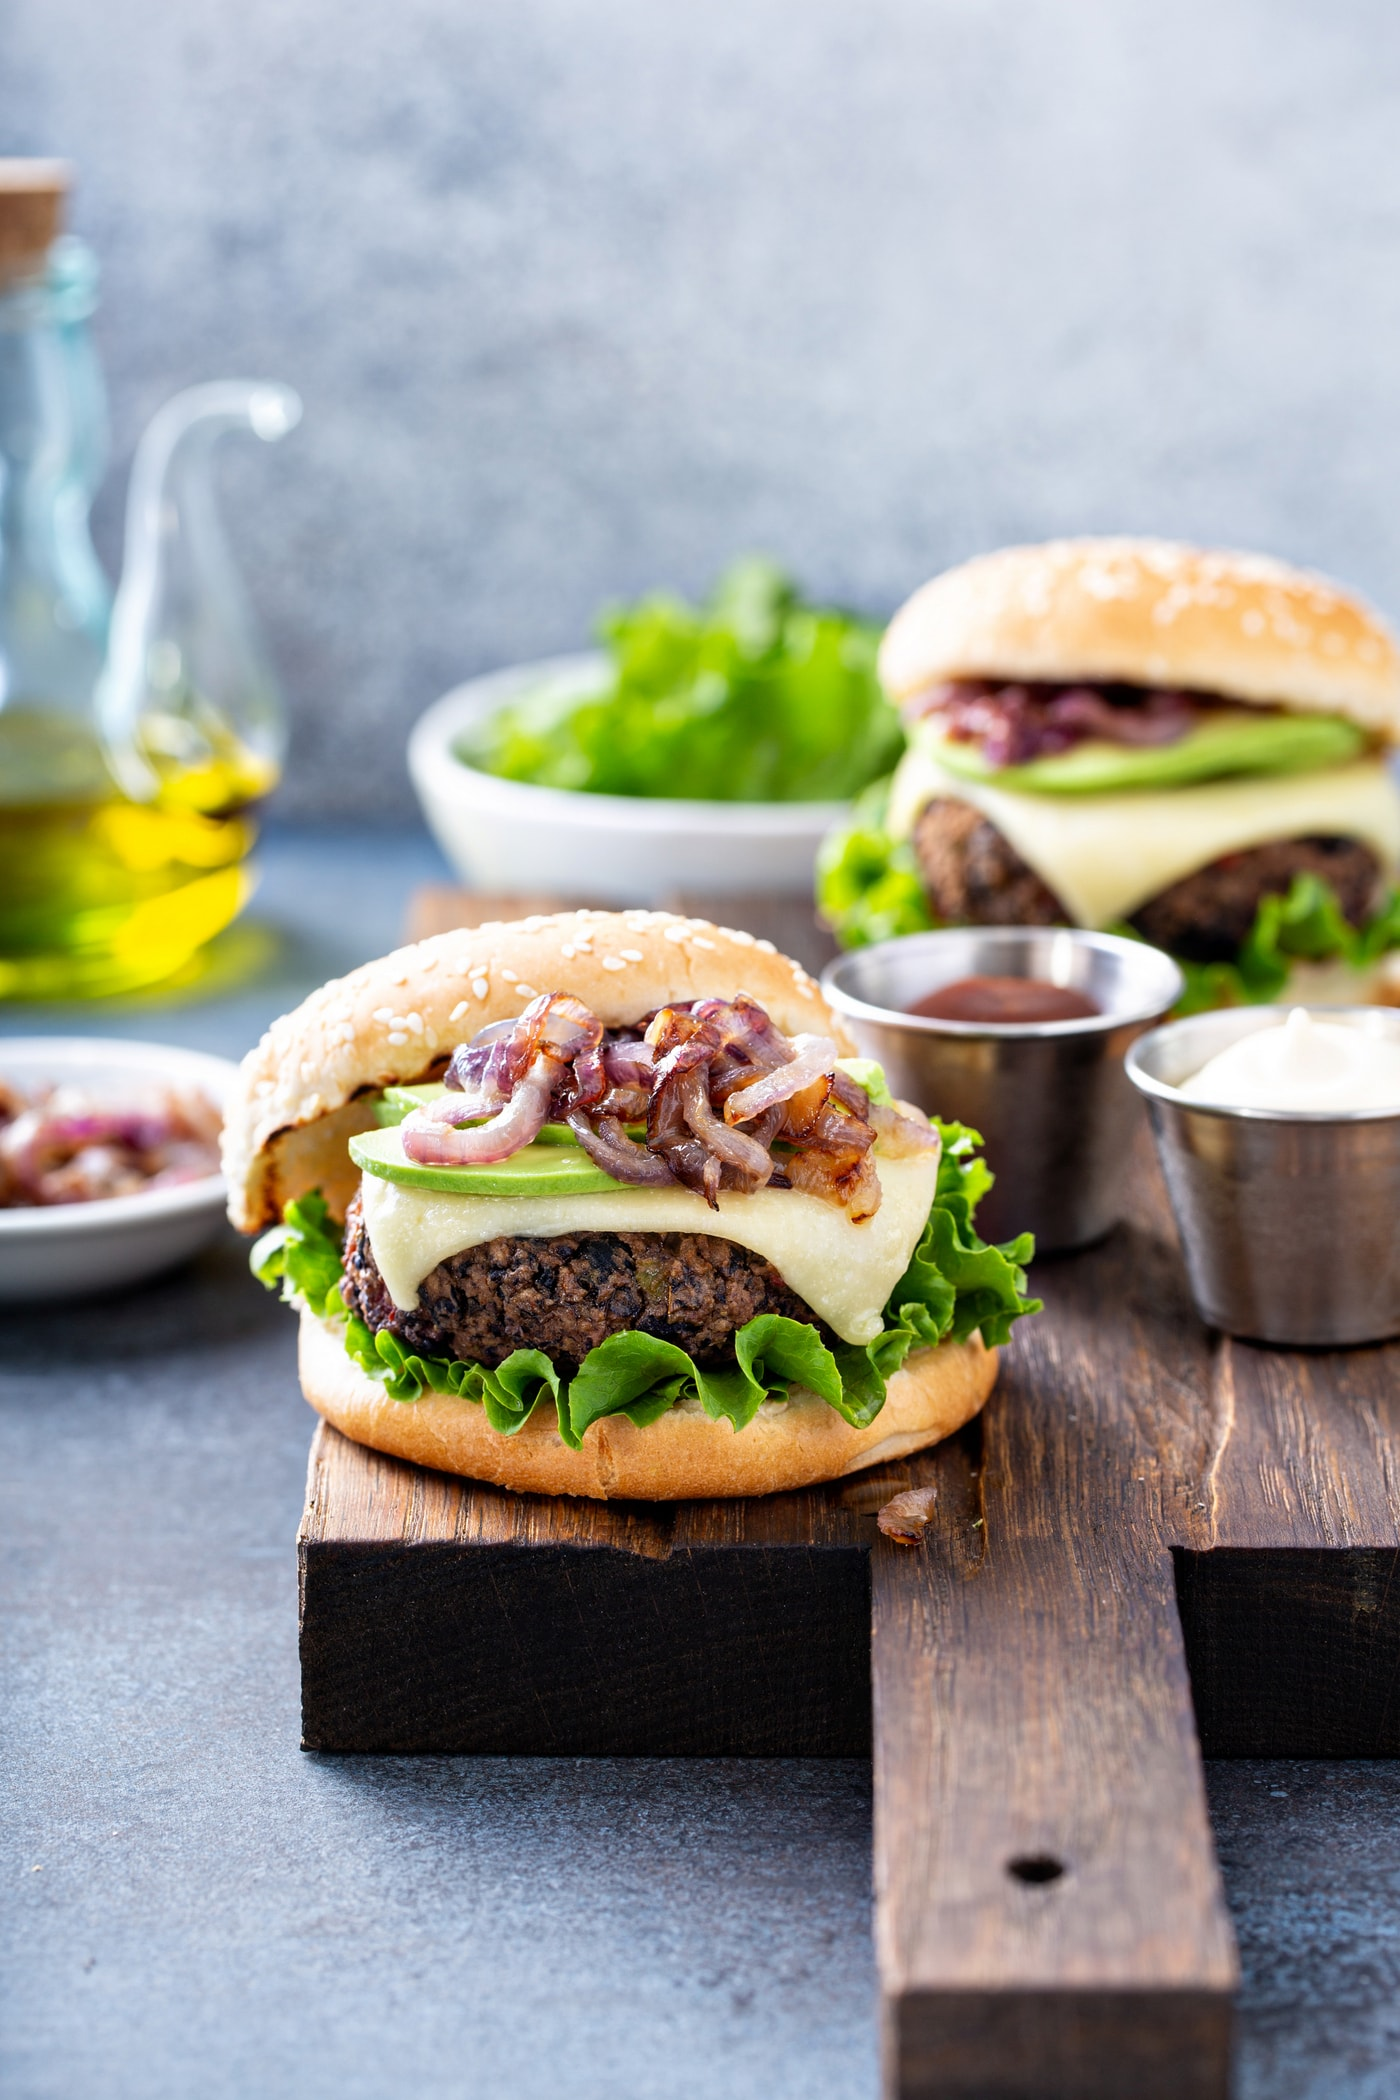 A black bean burger on a sesame seed bun topped with onions, avocado, cheese, and lettuce. There is another burger in the background and a bowl of lettuce, a container of oil, a dish of sliced onions, and a container of mayo.